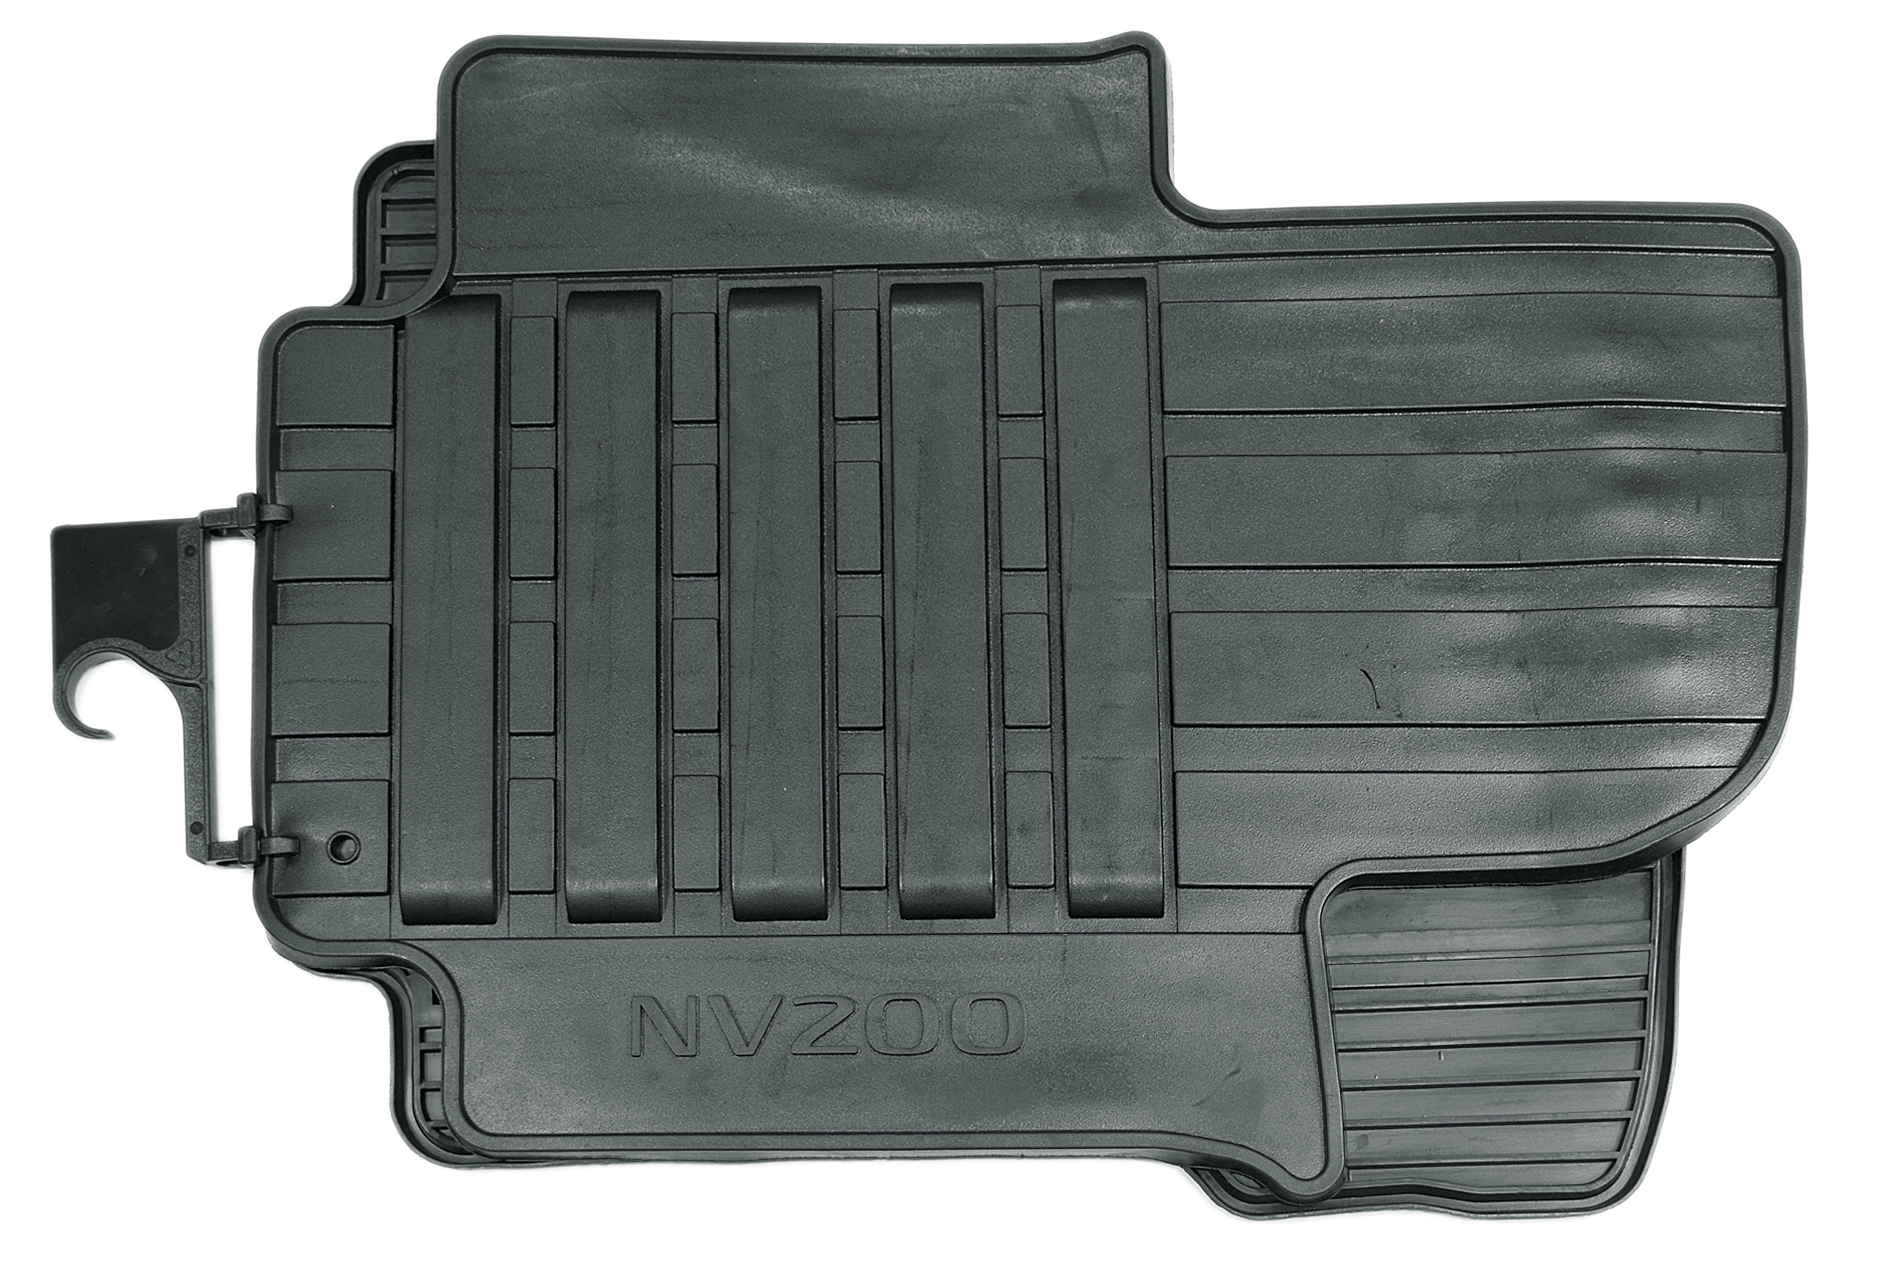 Nissan NV200 Genuine Car Floor Mats Rubber Tailored Front